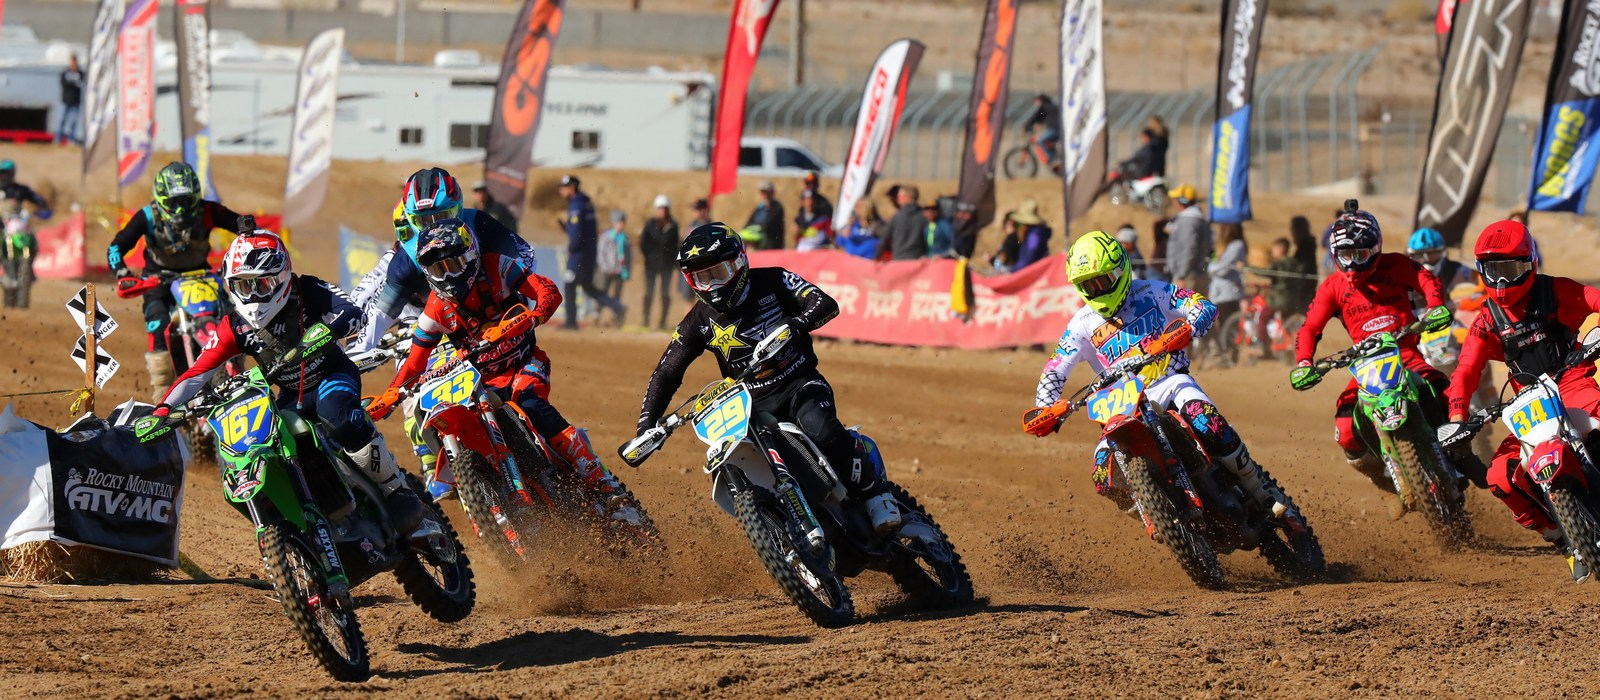 11-zach-bell-holeshot-motorcycle-worcs-racing